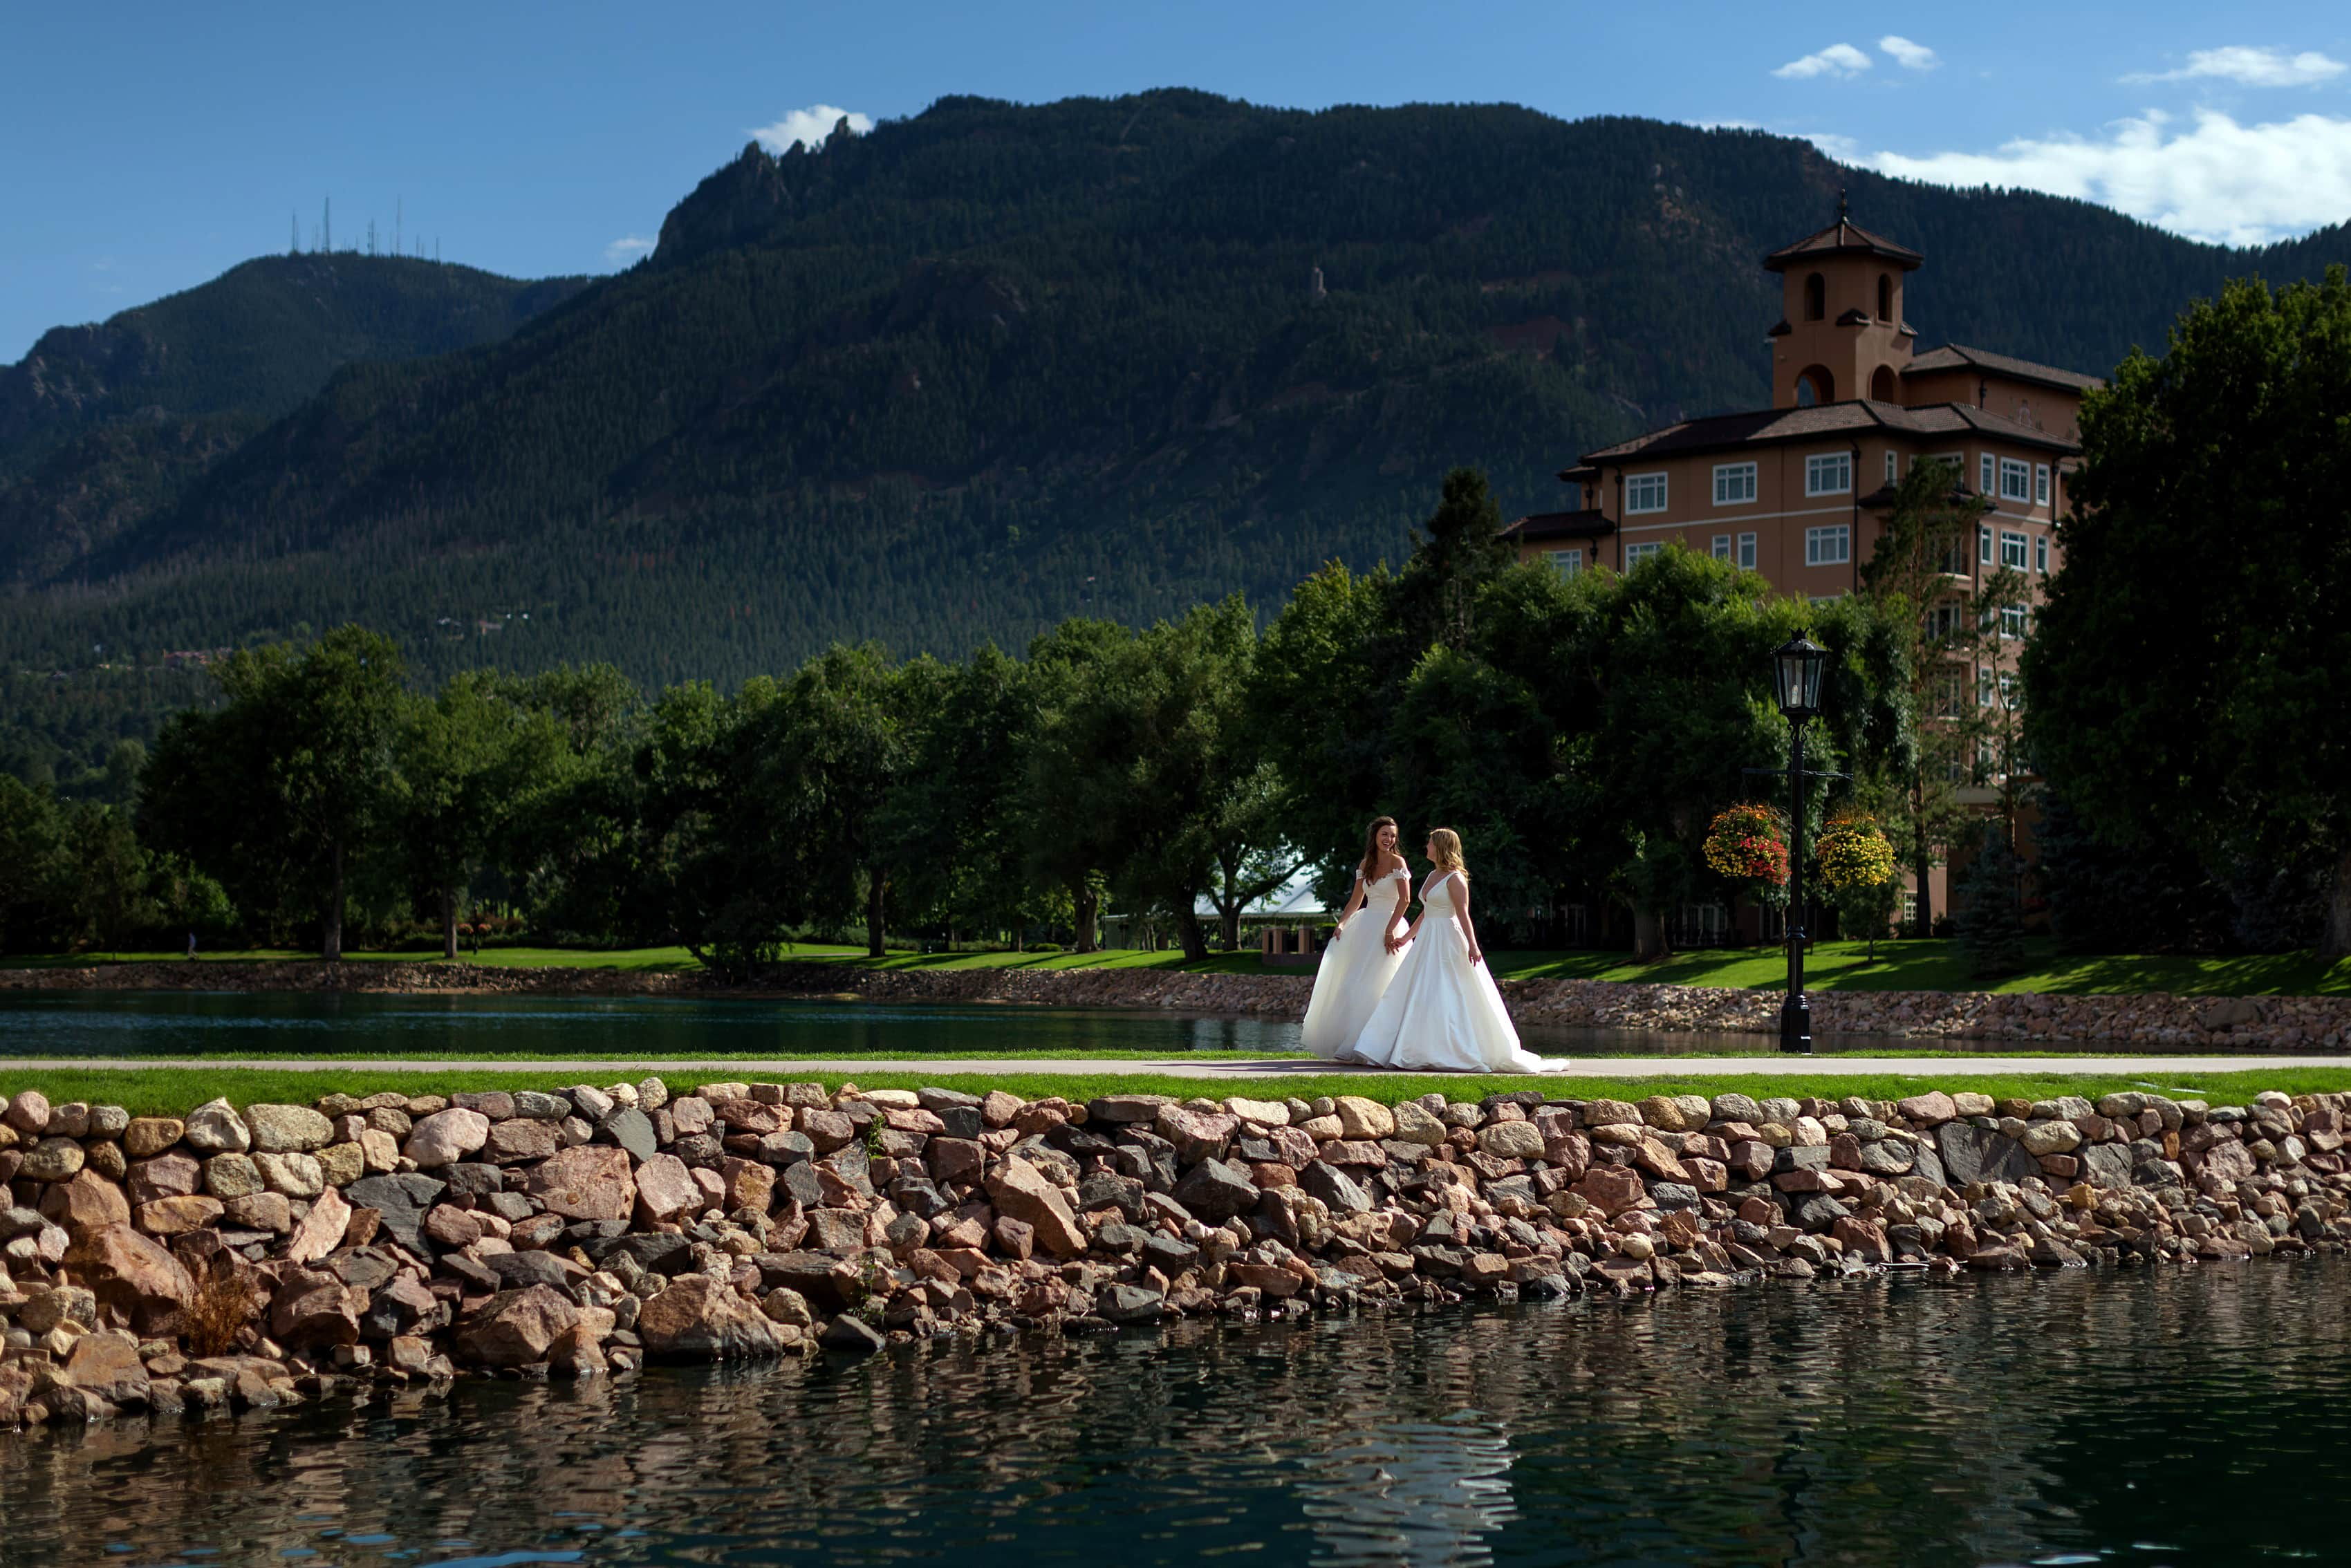 two brides walk together for wedding portraits at The Broadmoor in Colorado Springs, Colorado